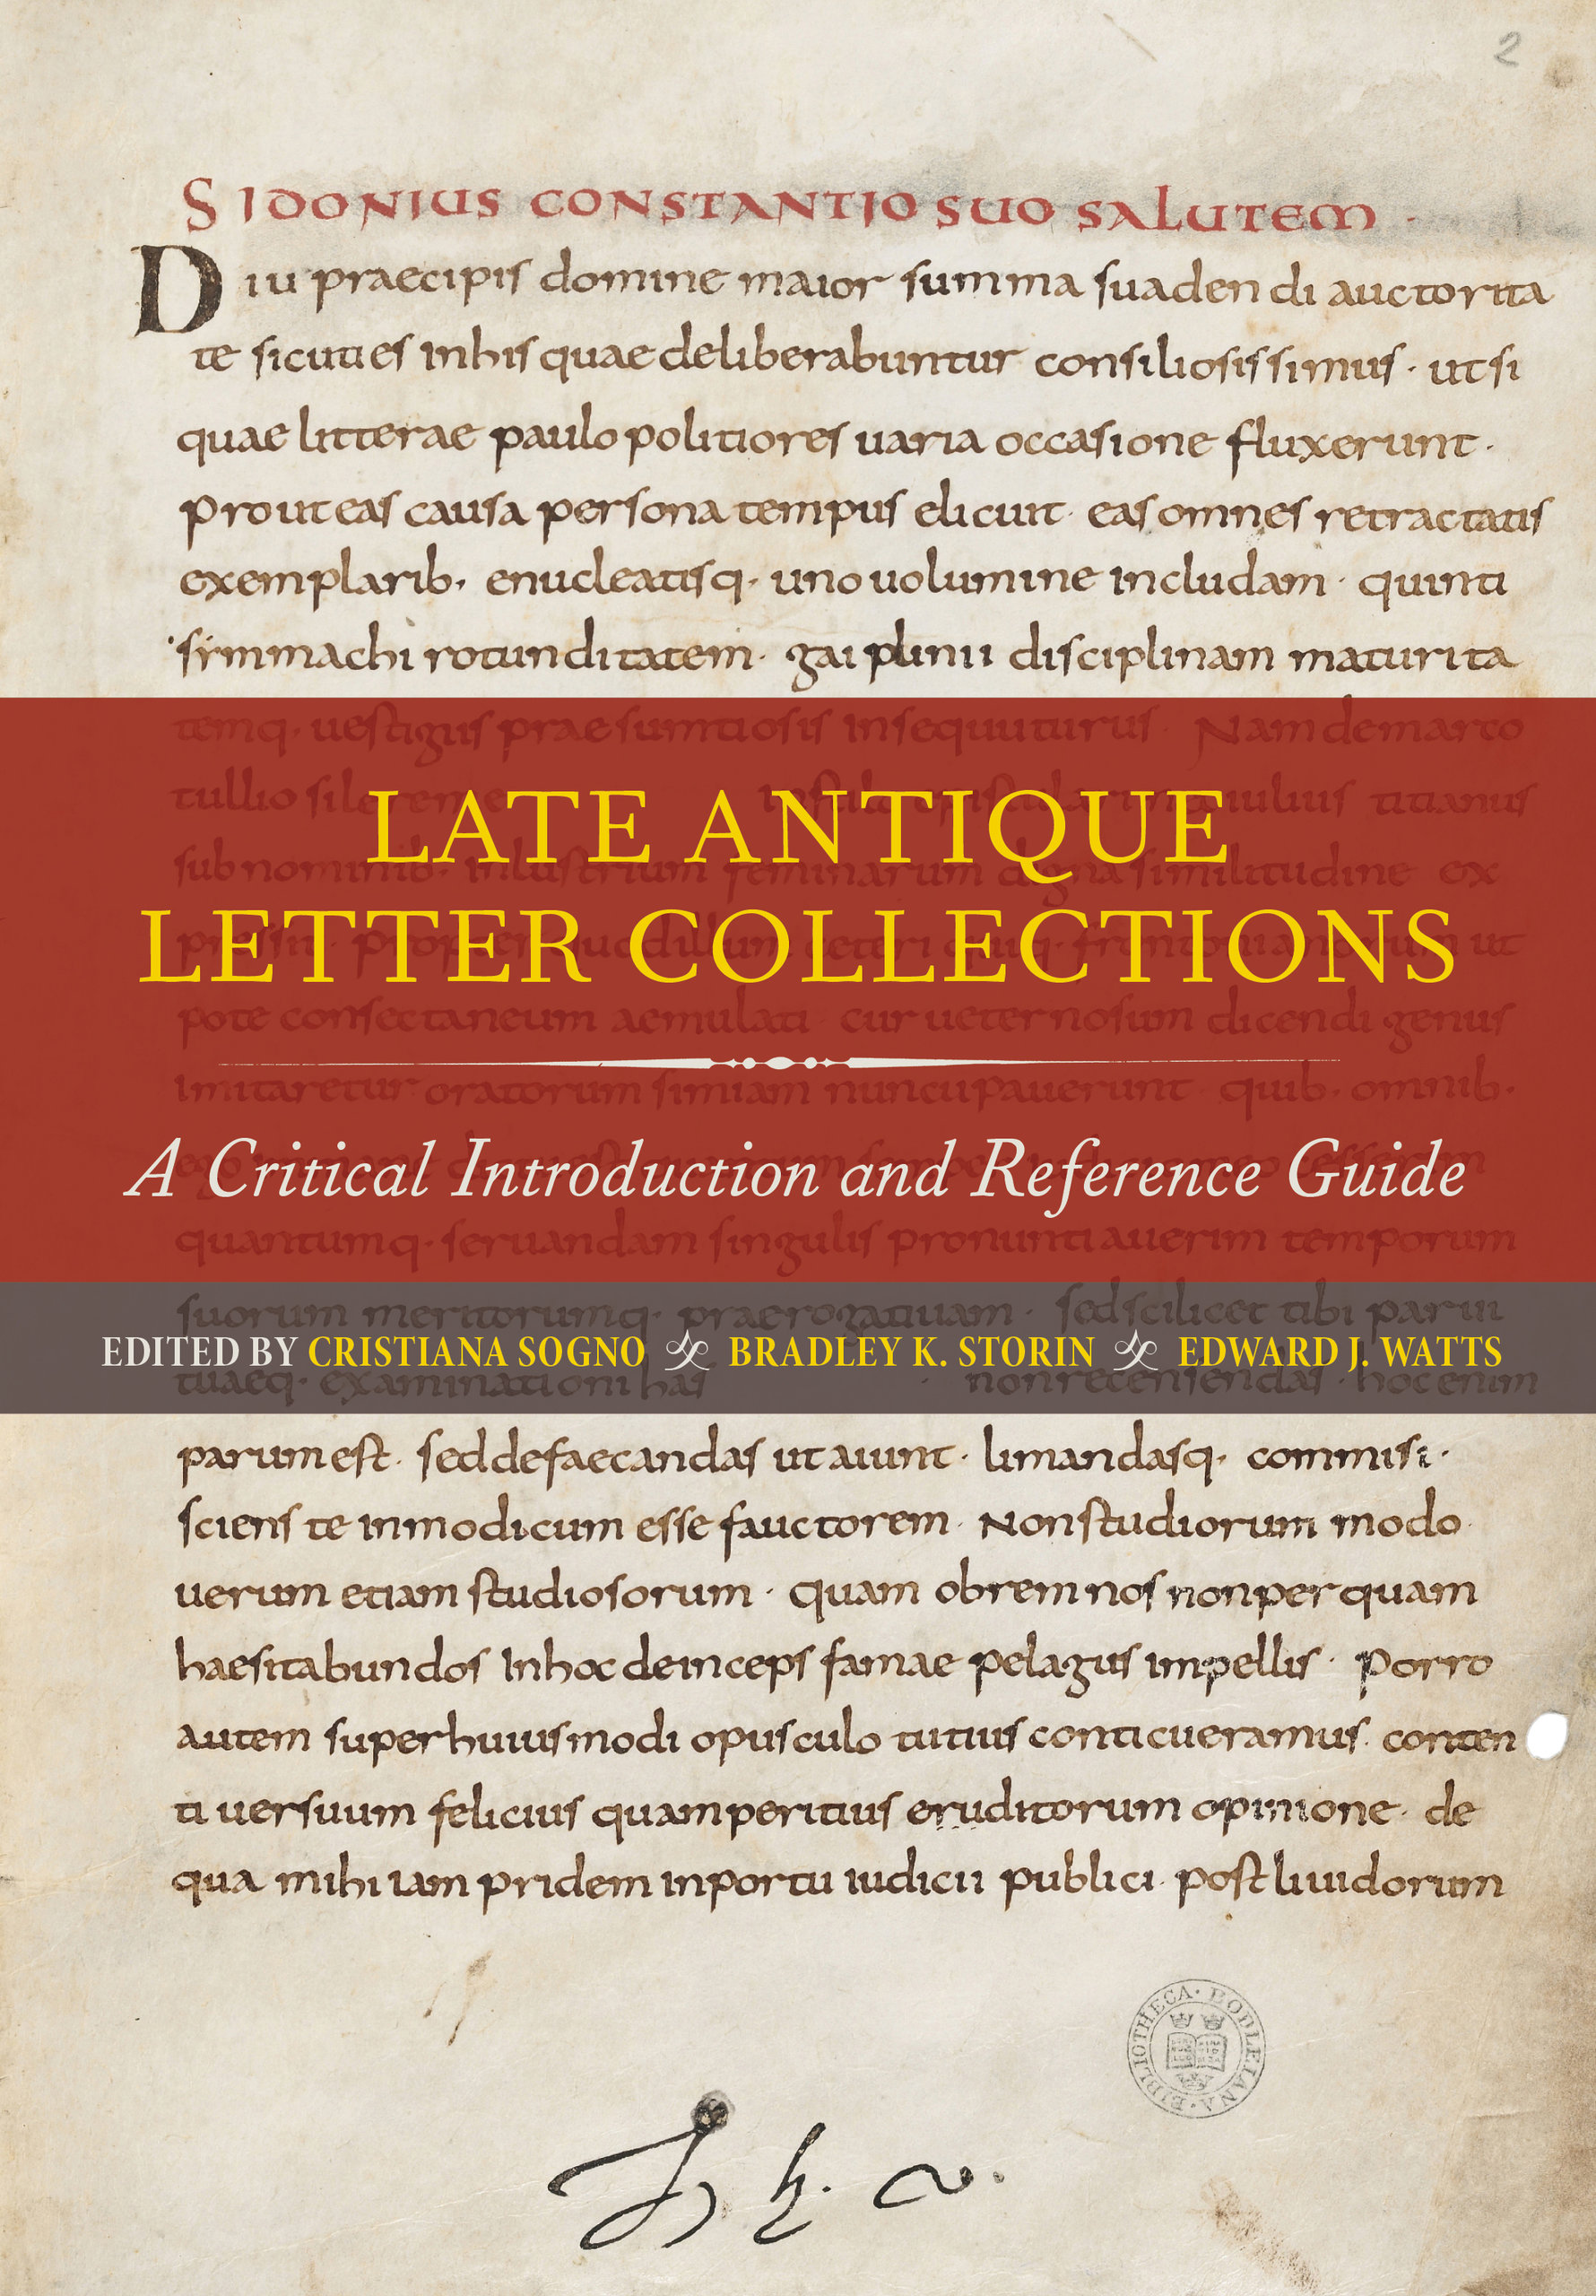 Late Antique Letter Collections by Cristiana Sogno, Bradley ...